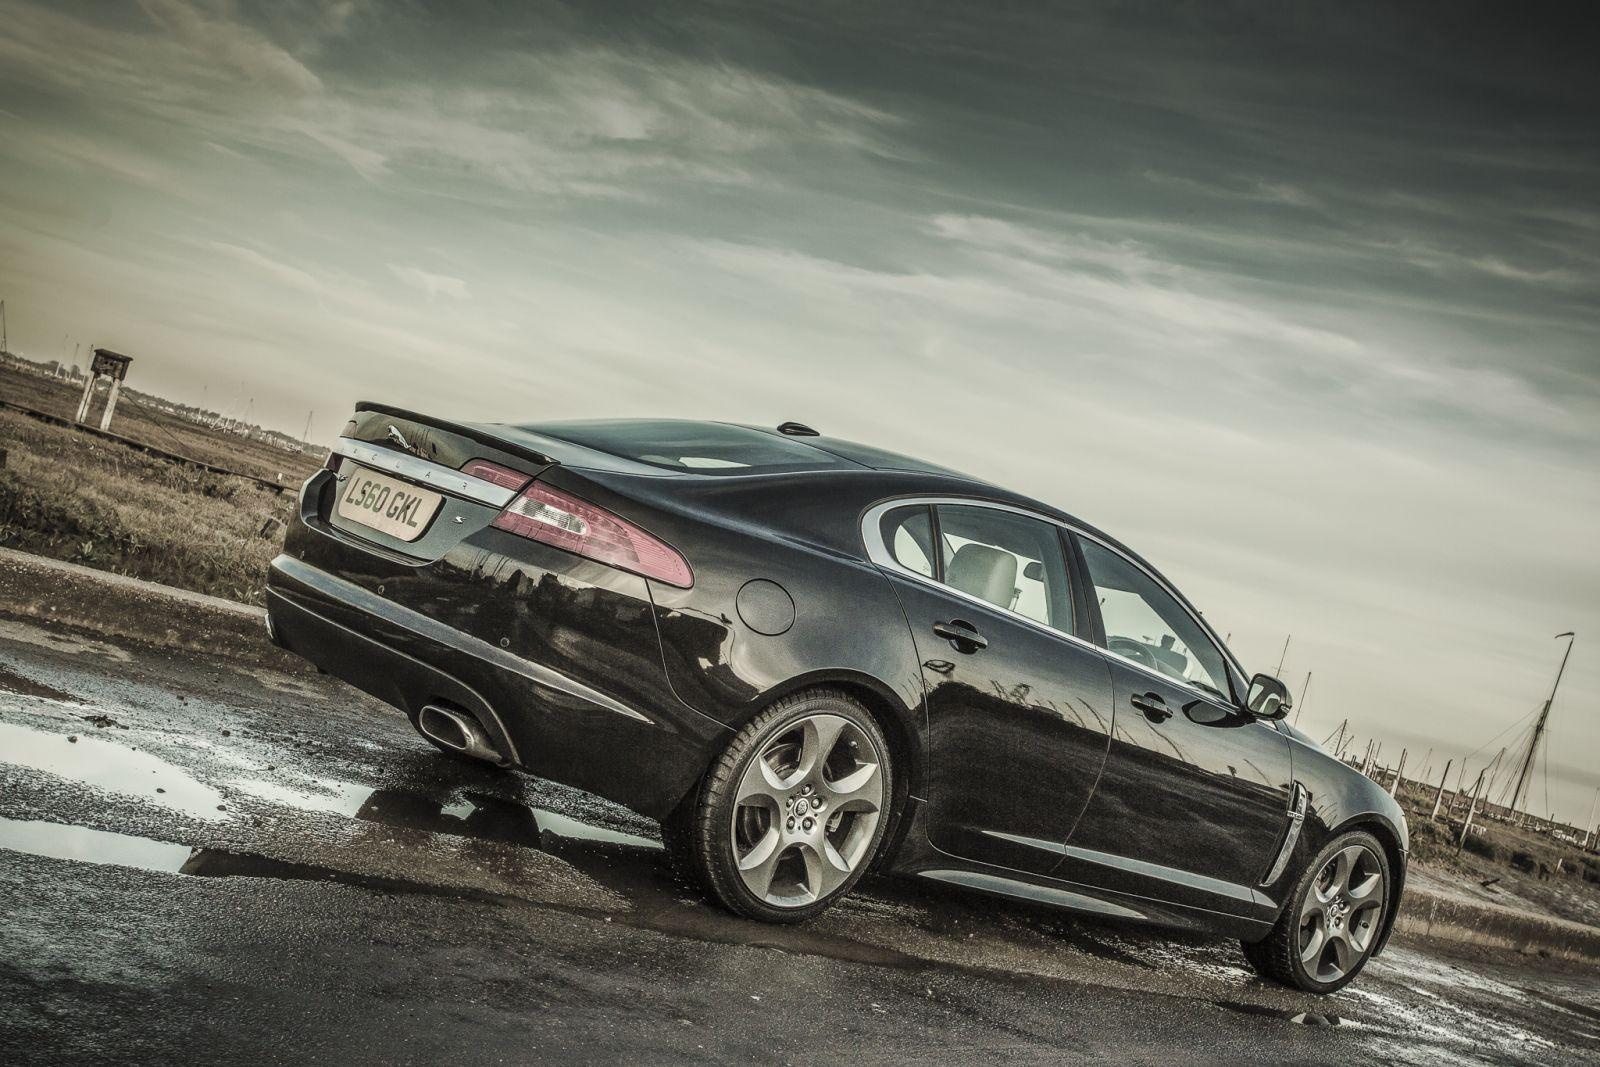 Editorial Shot of my new Jaguar XF 3.0 S